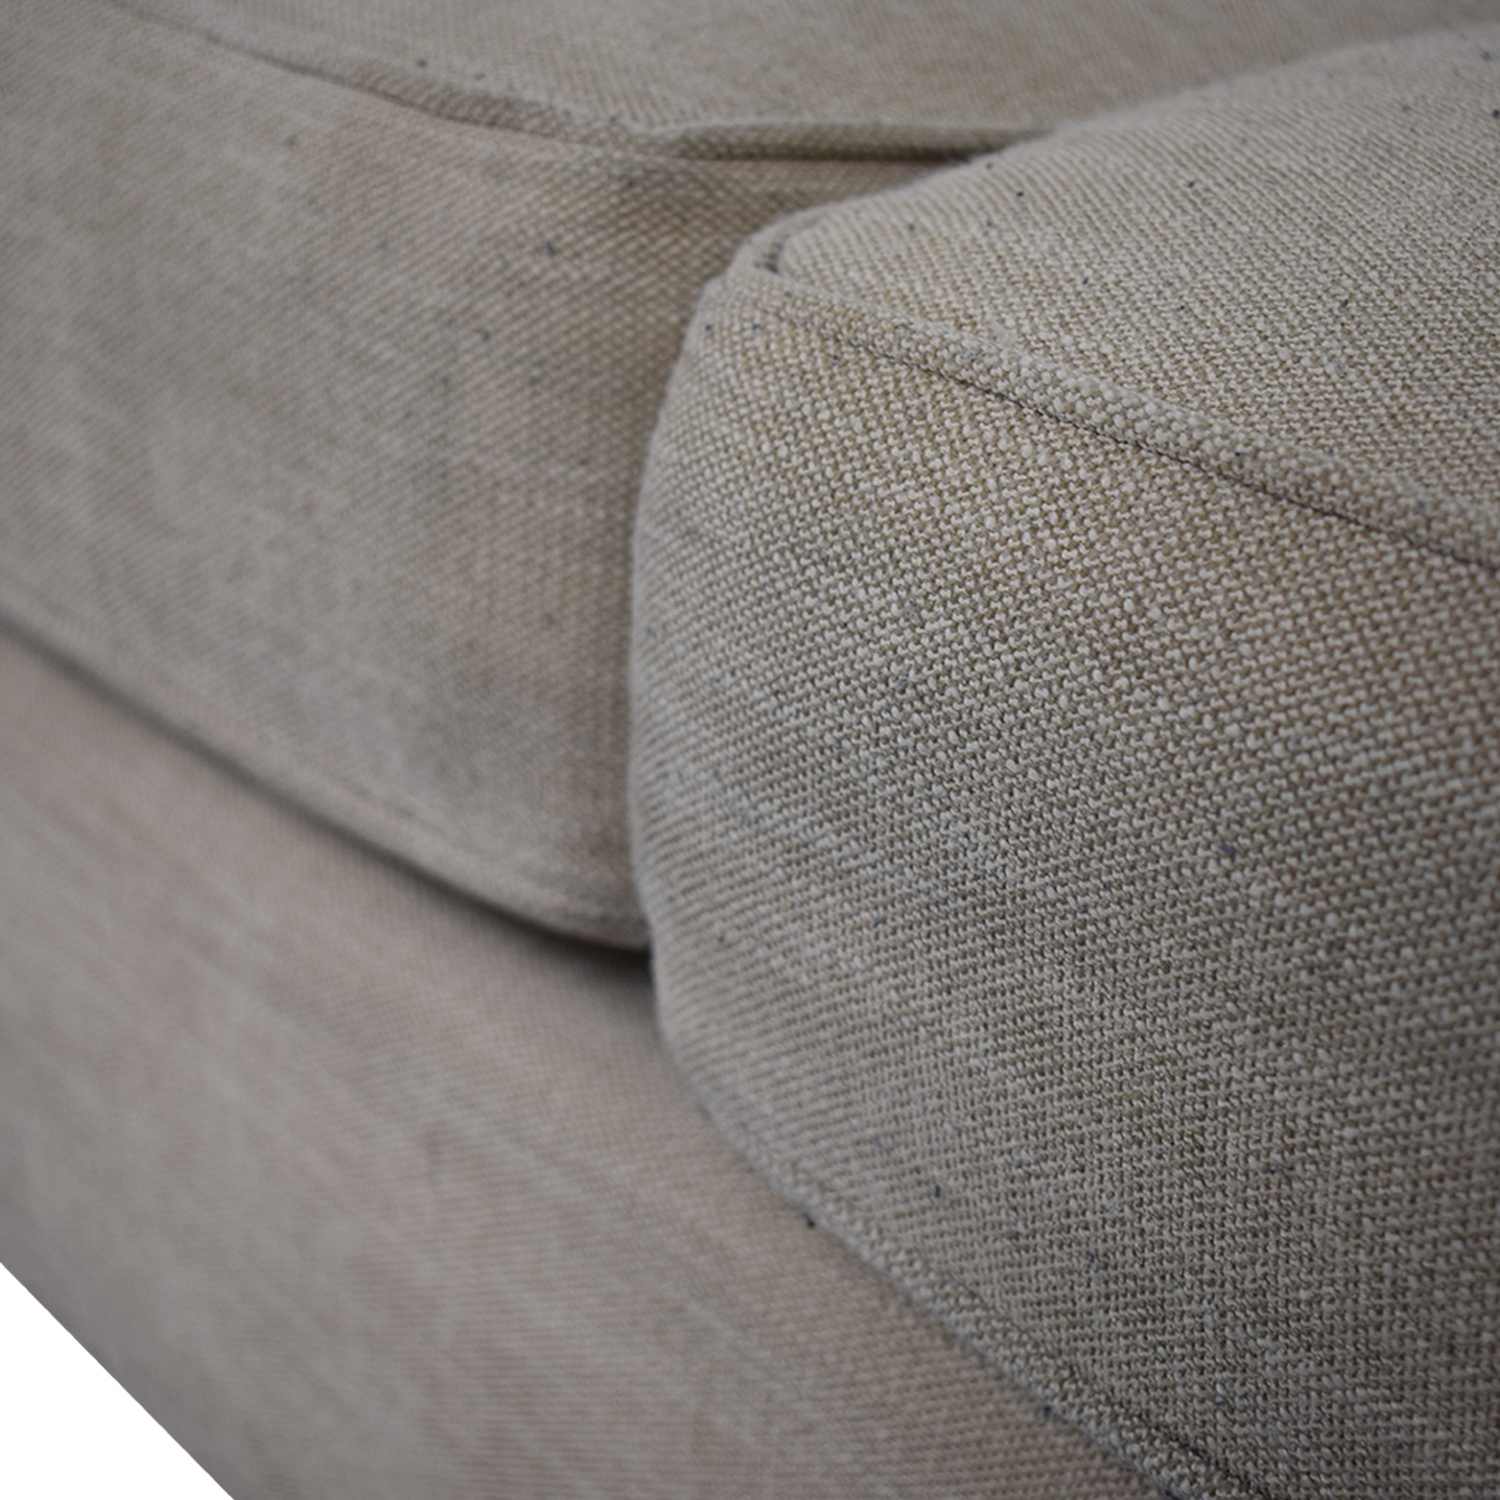 Pottery Barn Pottery Barn Grey Roll Arm Upholstered Couch dimensions